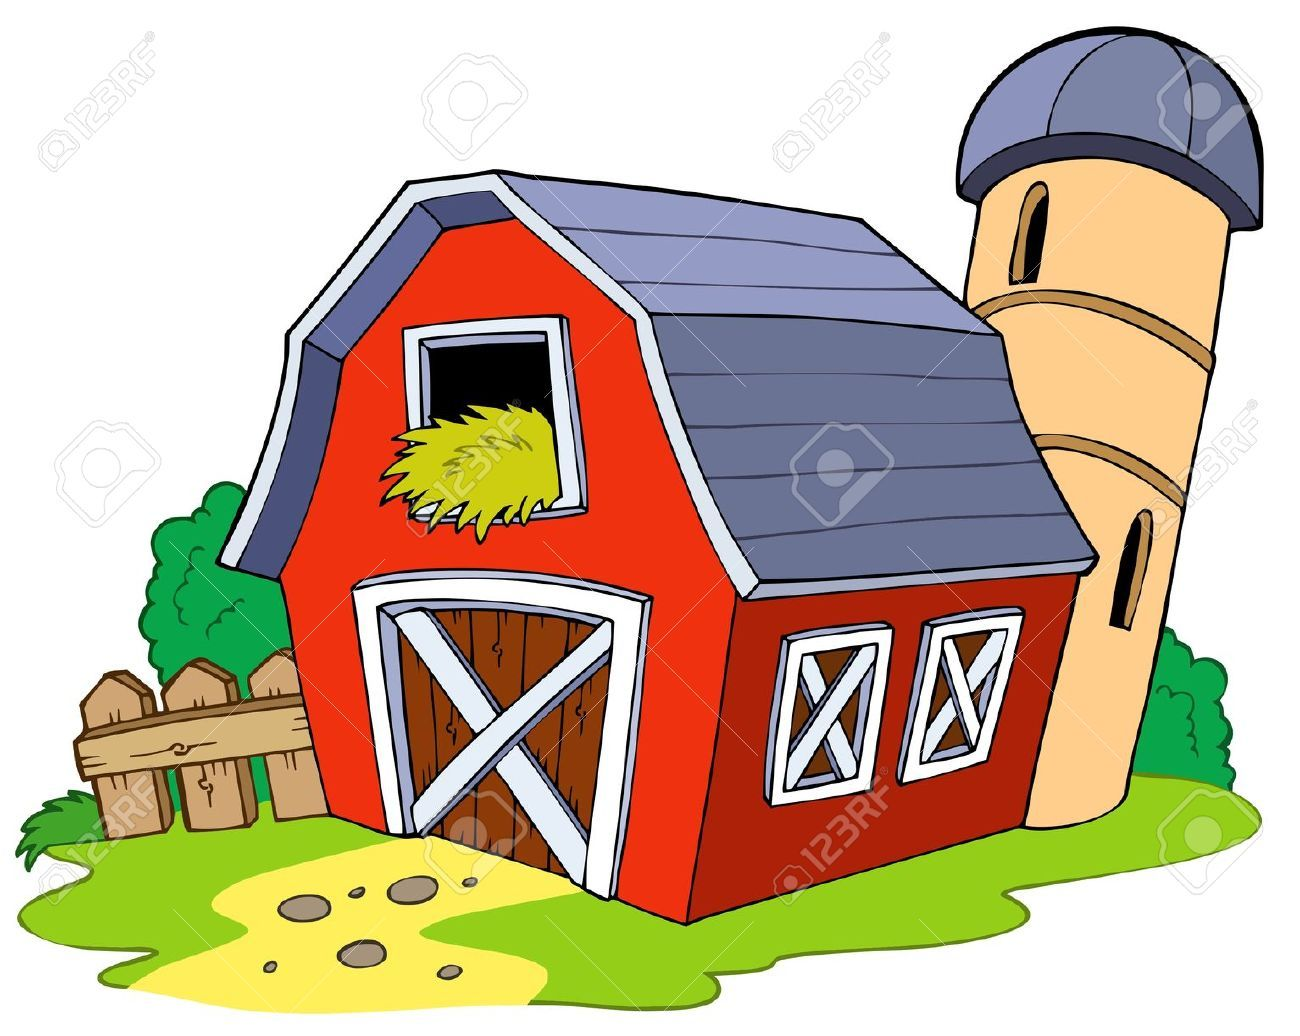 Wide barn clipart image transparent Red Barn Images, Stock Pictures, Royalty Free Red Barn ... image transparent